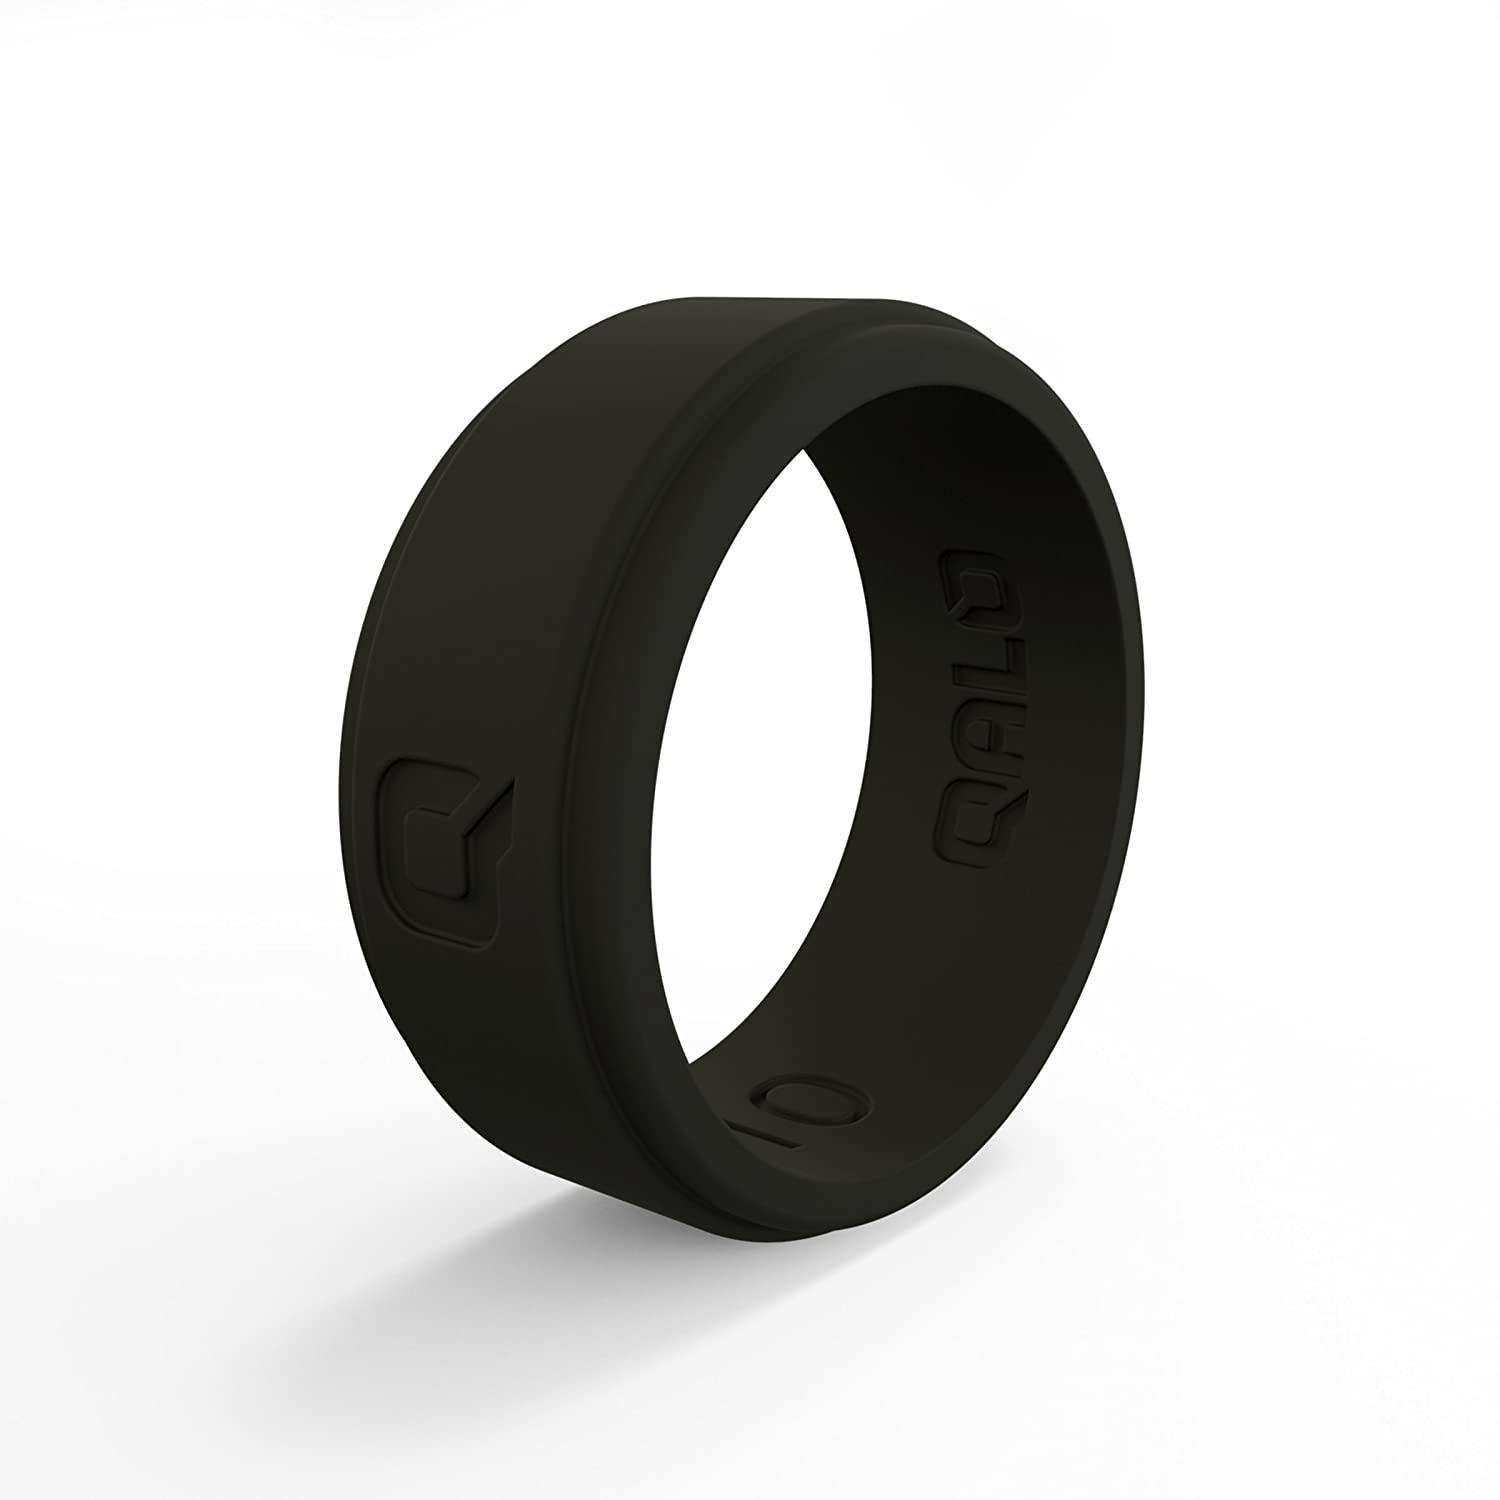 QALO Men's Functional Silicone Ring, Q2X Step Edge, Charcoal Grey, Size 8 Inc. MSC08